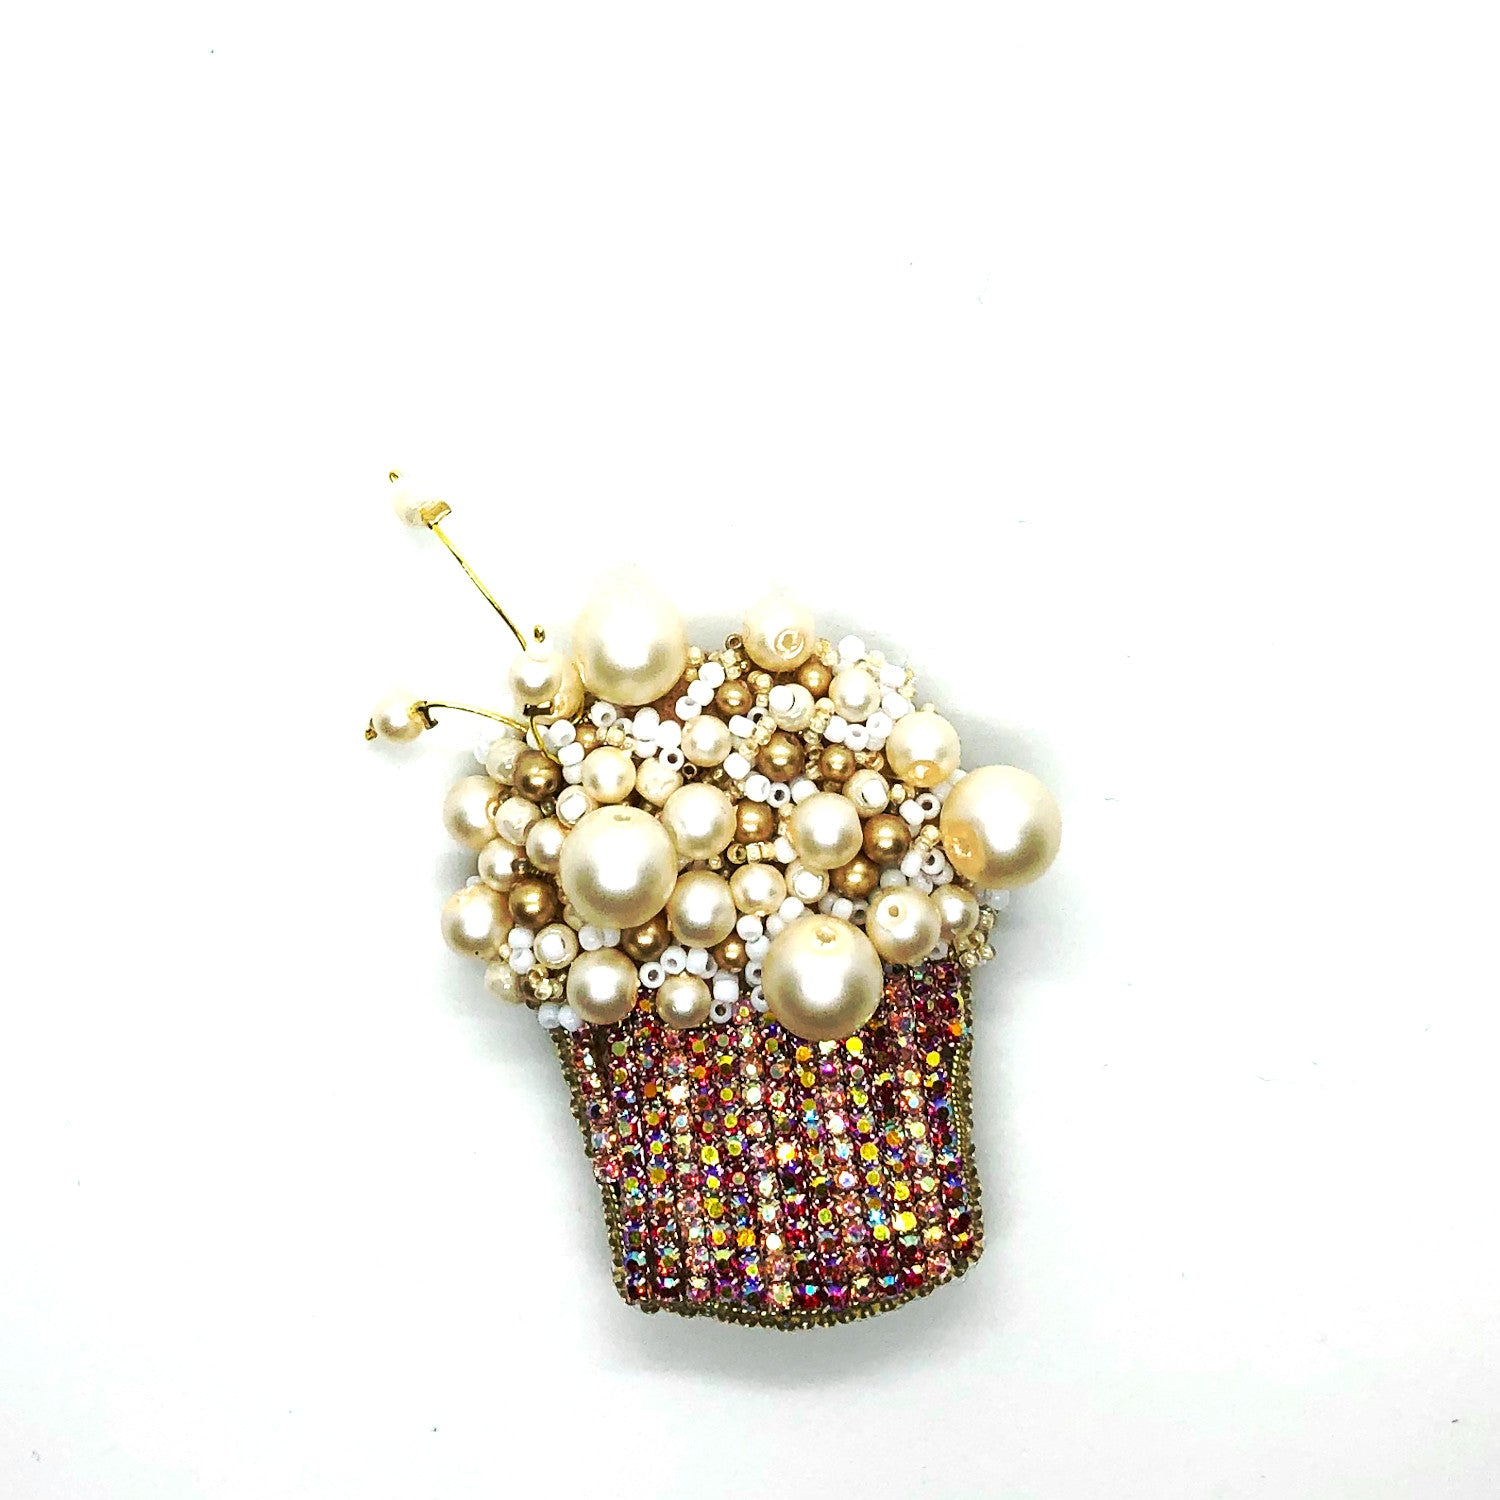 Statement handmade popcorn brooch bold embroidery crystals pearls red white gold